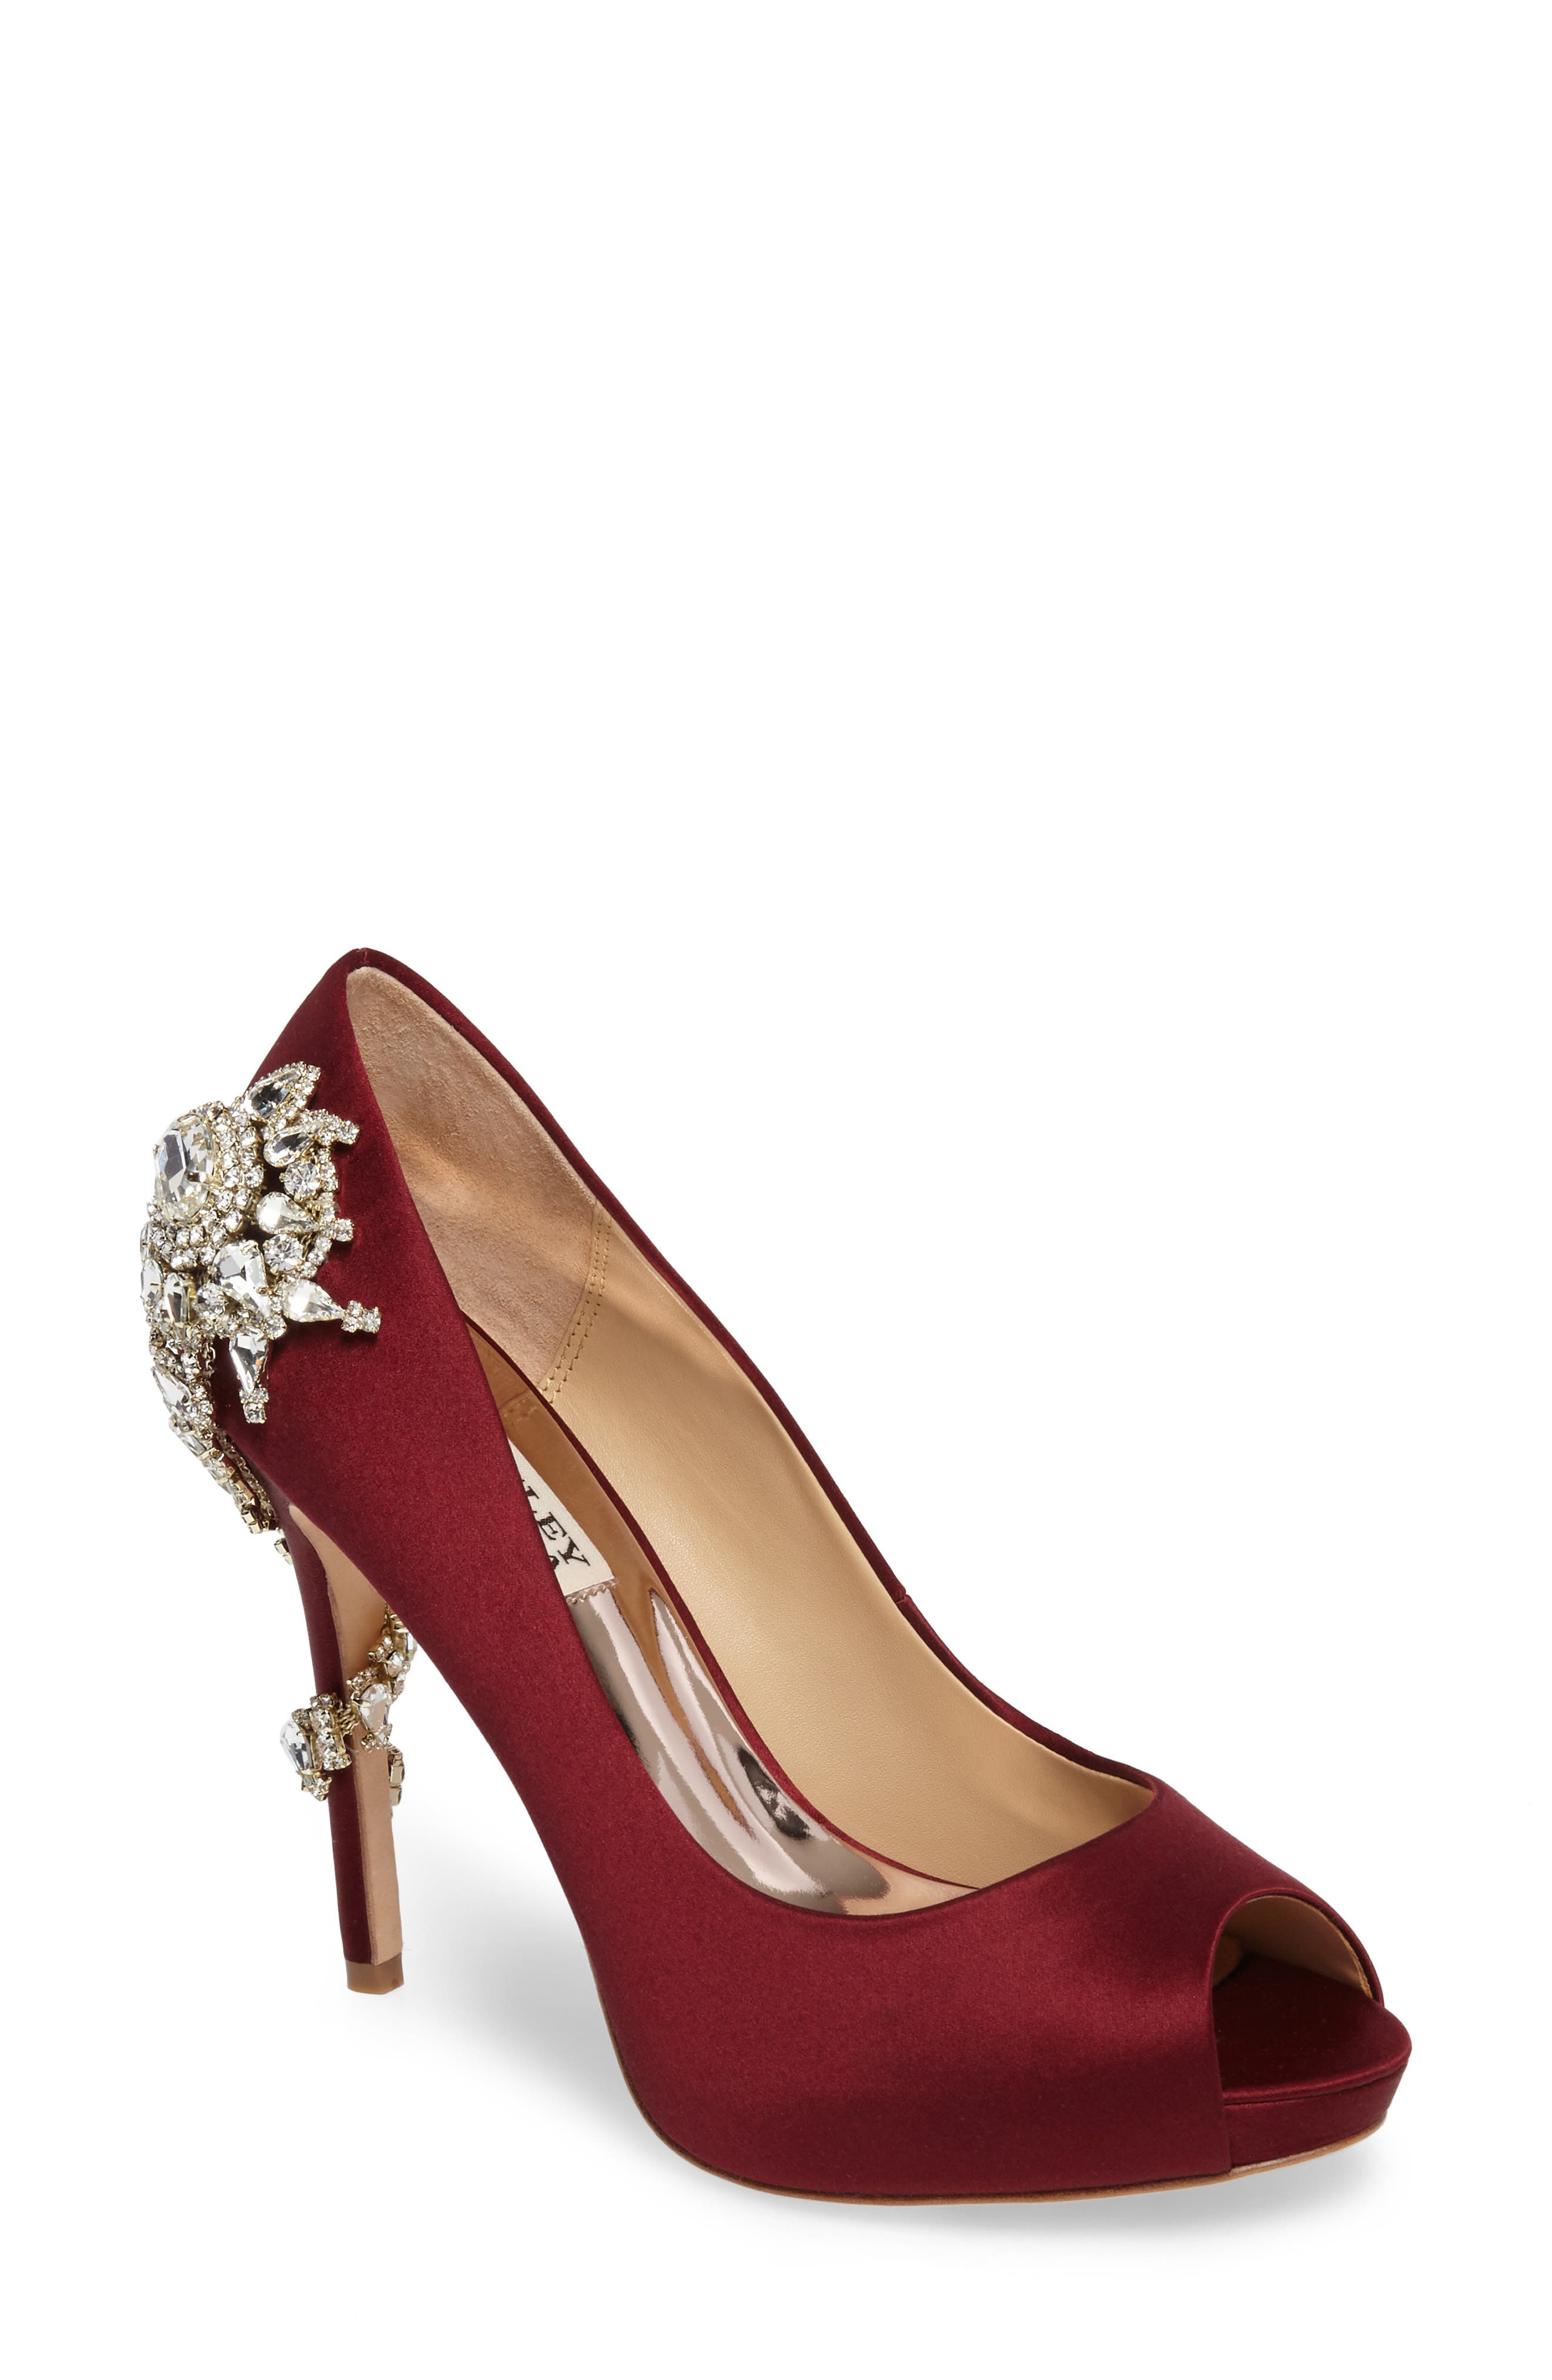 Badgley Mischka 'Royal' Crystal Embellished Peeptoe Pump,                         Main,                         color, Burgundy Satin